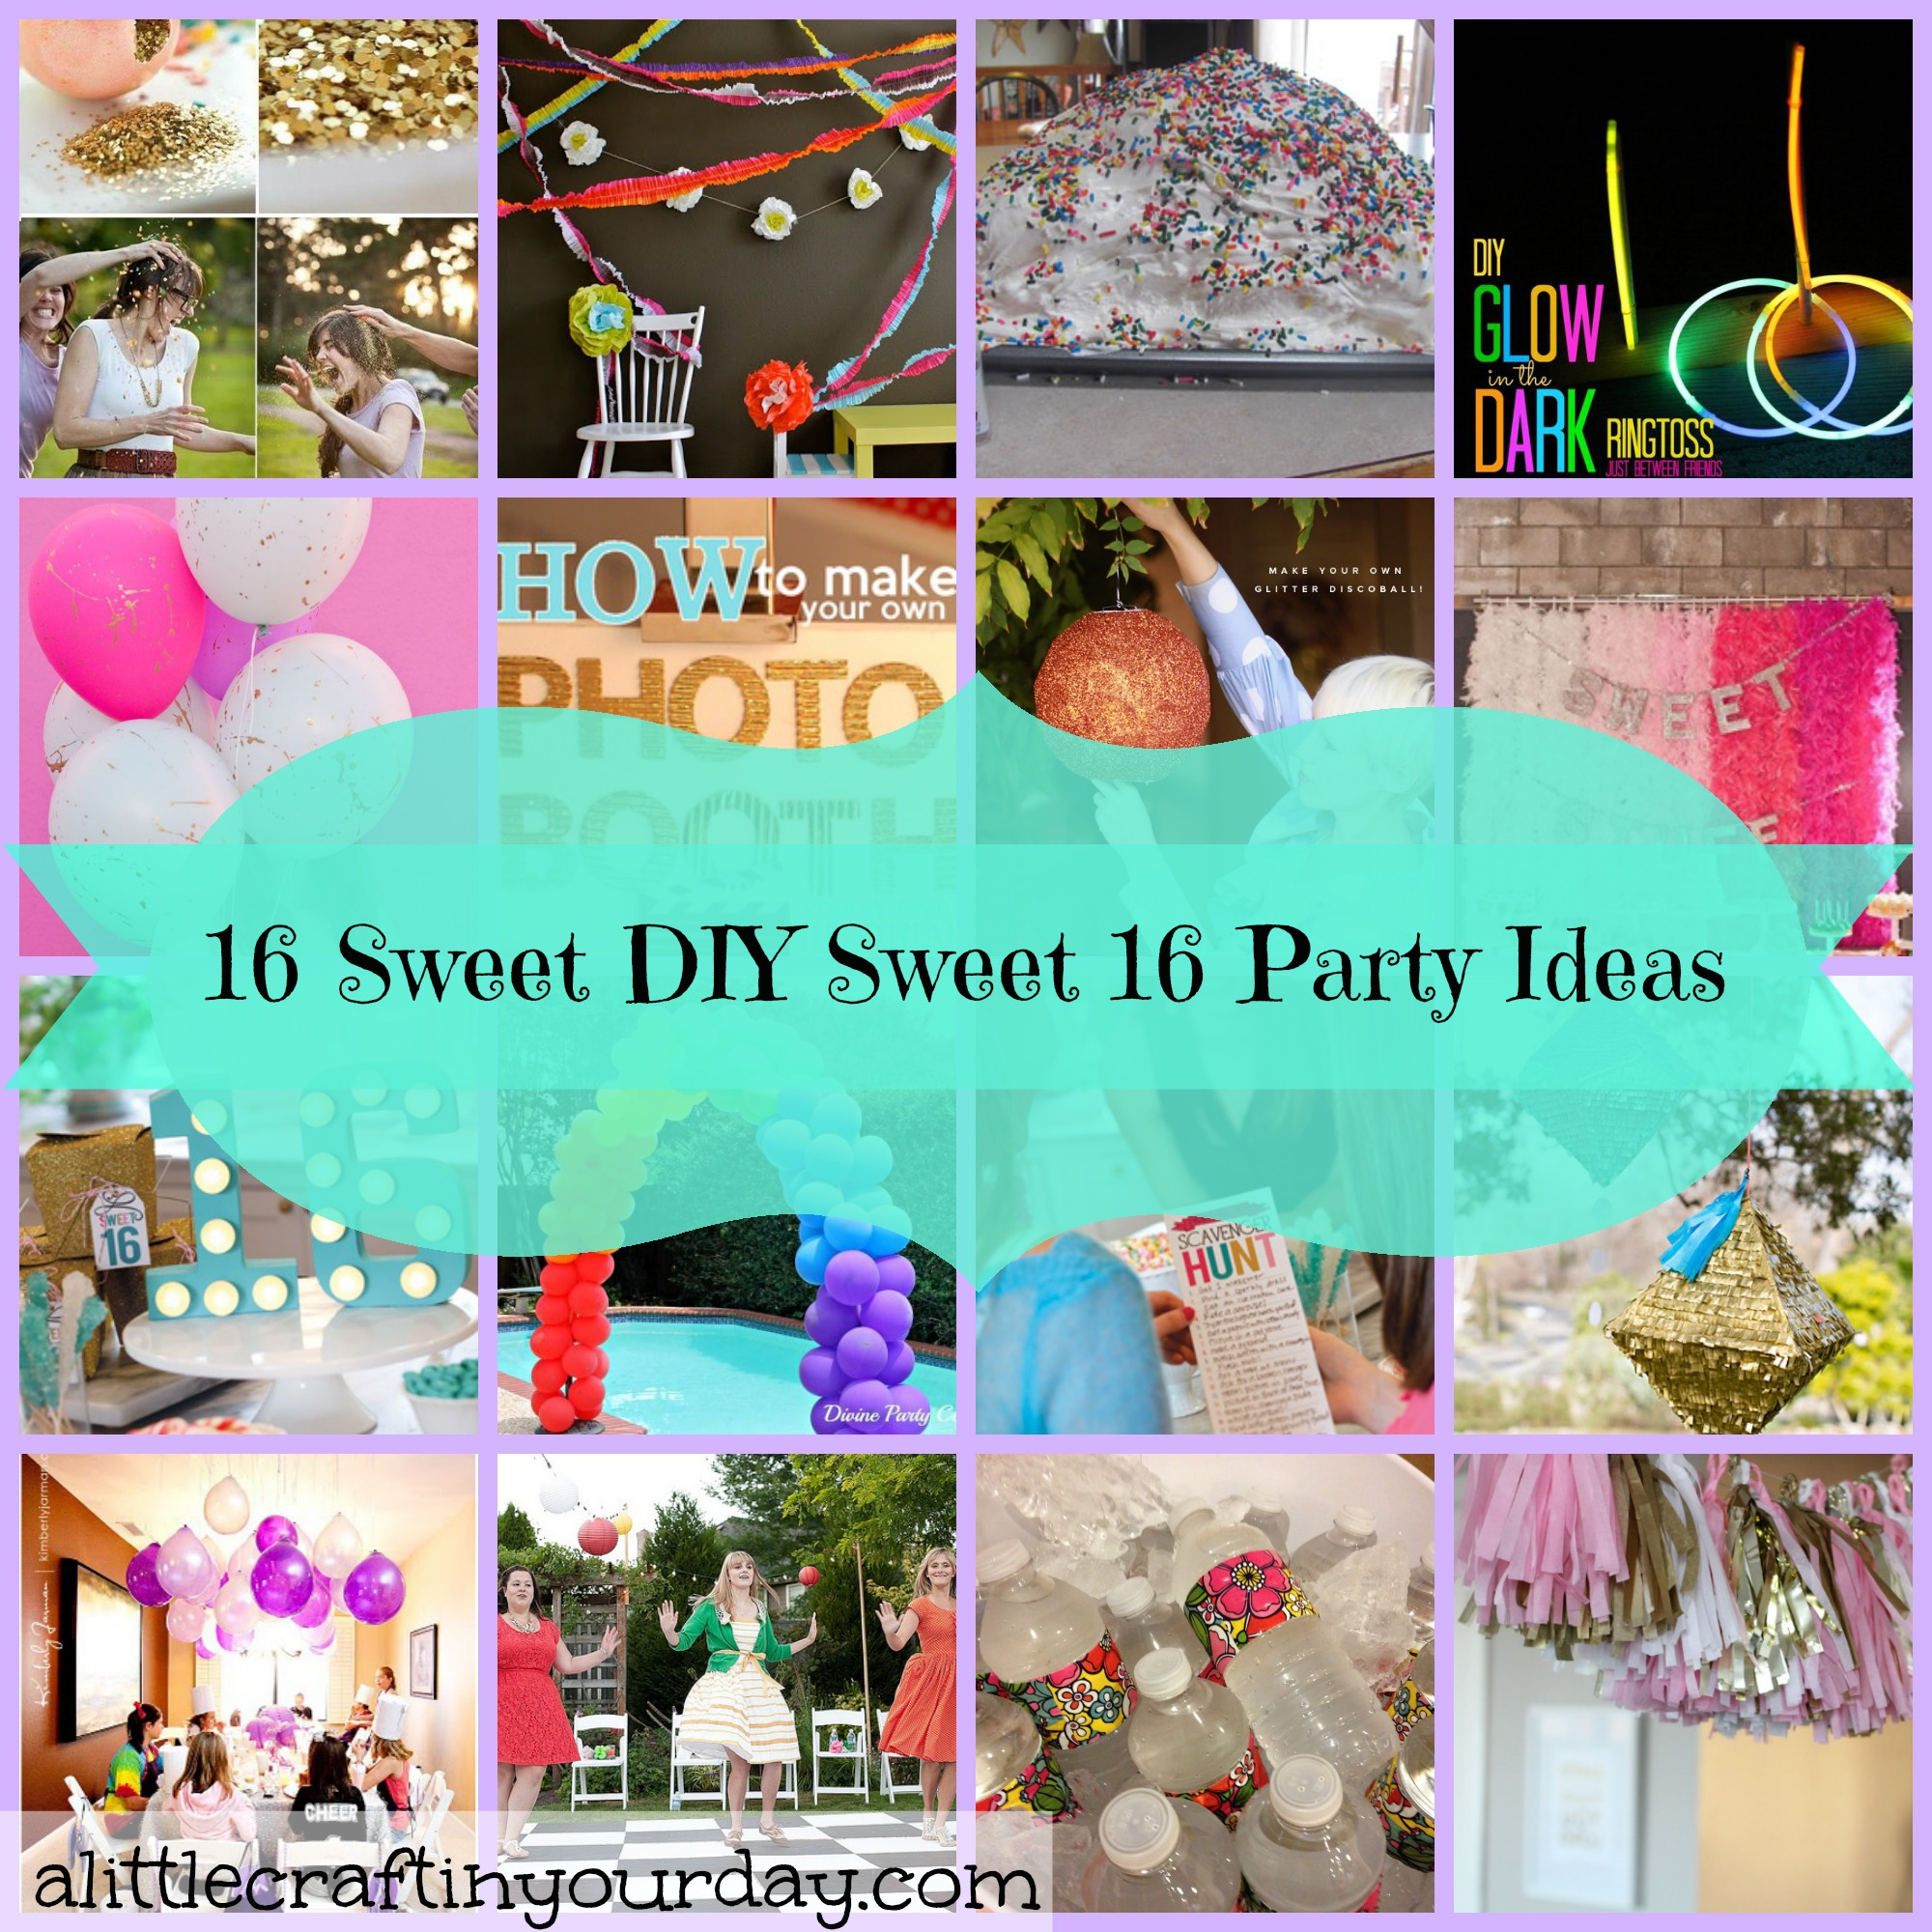 16_Sweet_DIY_Sweet_16_Party_Ideas  sc 1 st  A Little Craft In Your Day & 16 Sweet DIY Sweet 16 Party Ideas - A Little Craft In Your Day